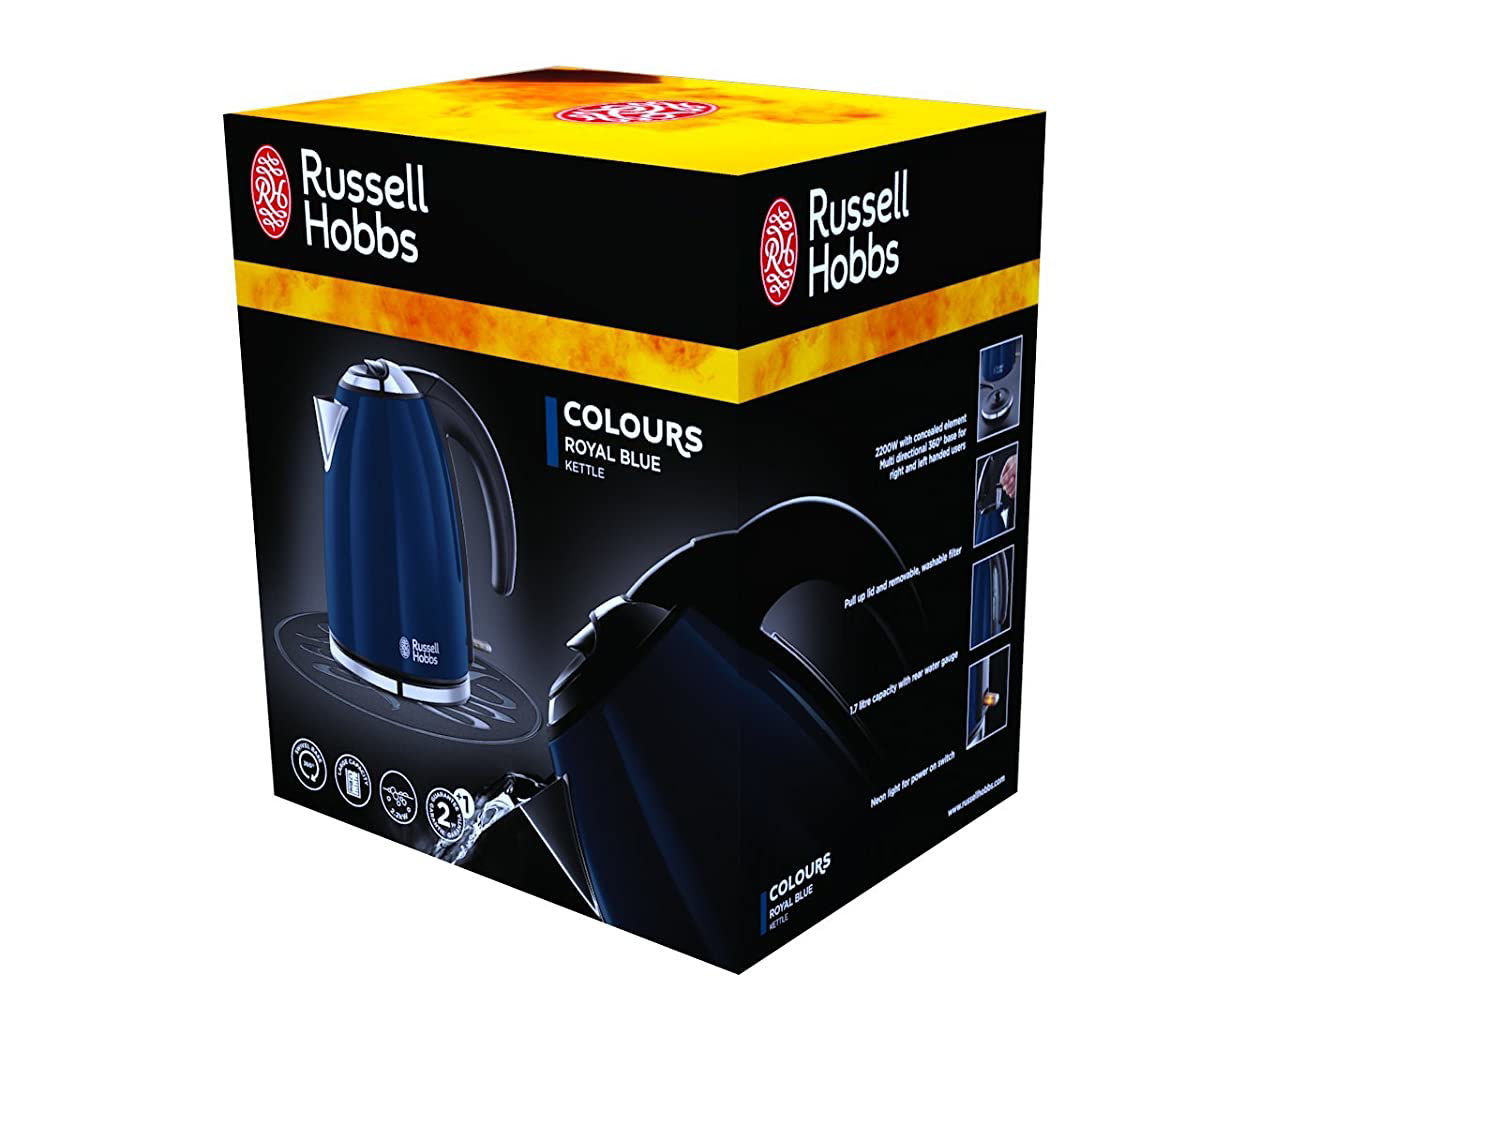 Picture of Russell Hobbs 18947-70 Colors Royal Blue - Kettle, 1,7 l, hidden resistance, 2200 W